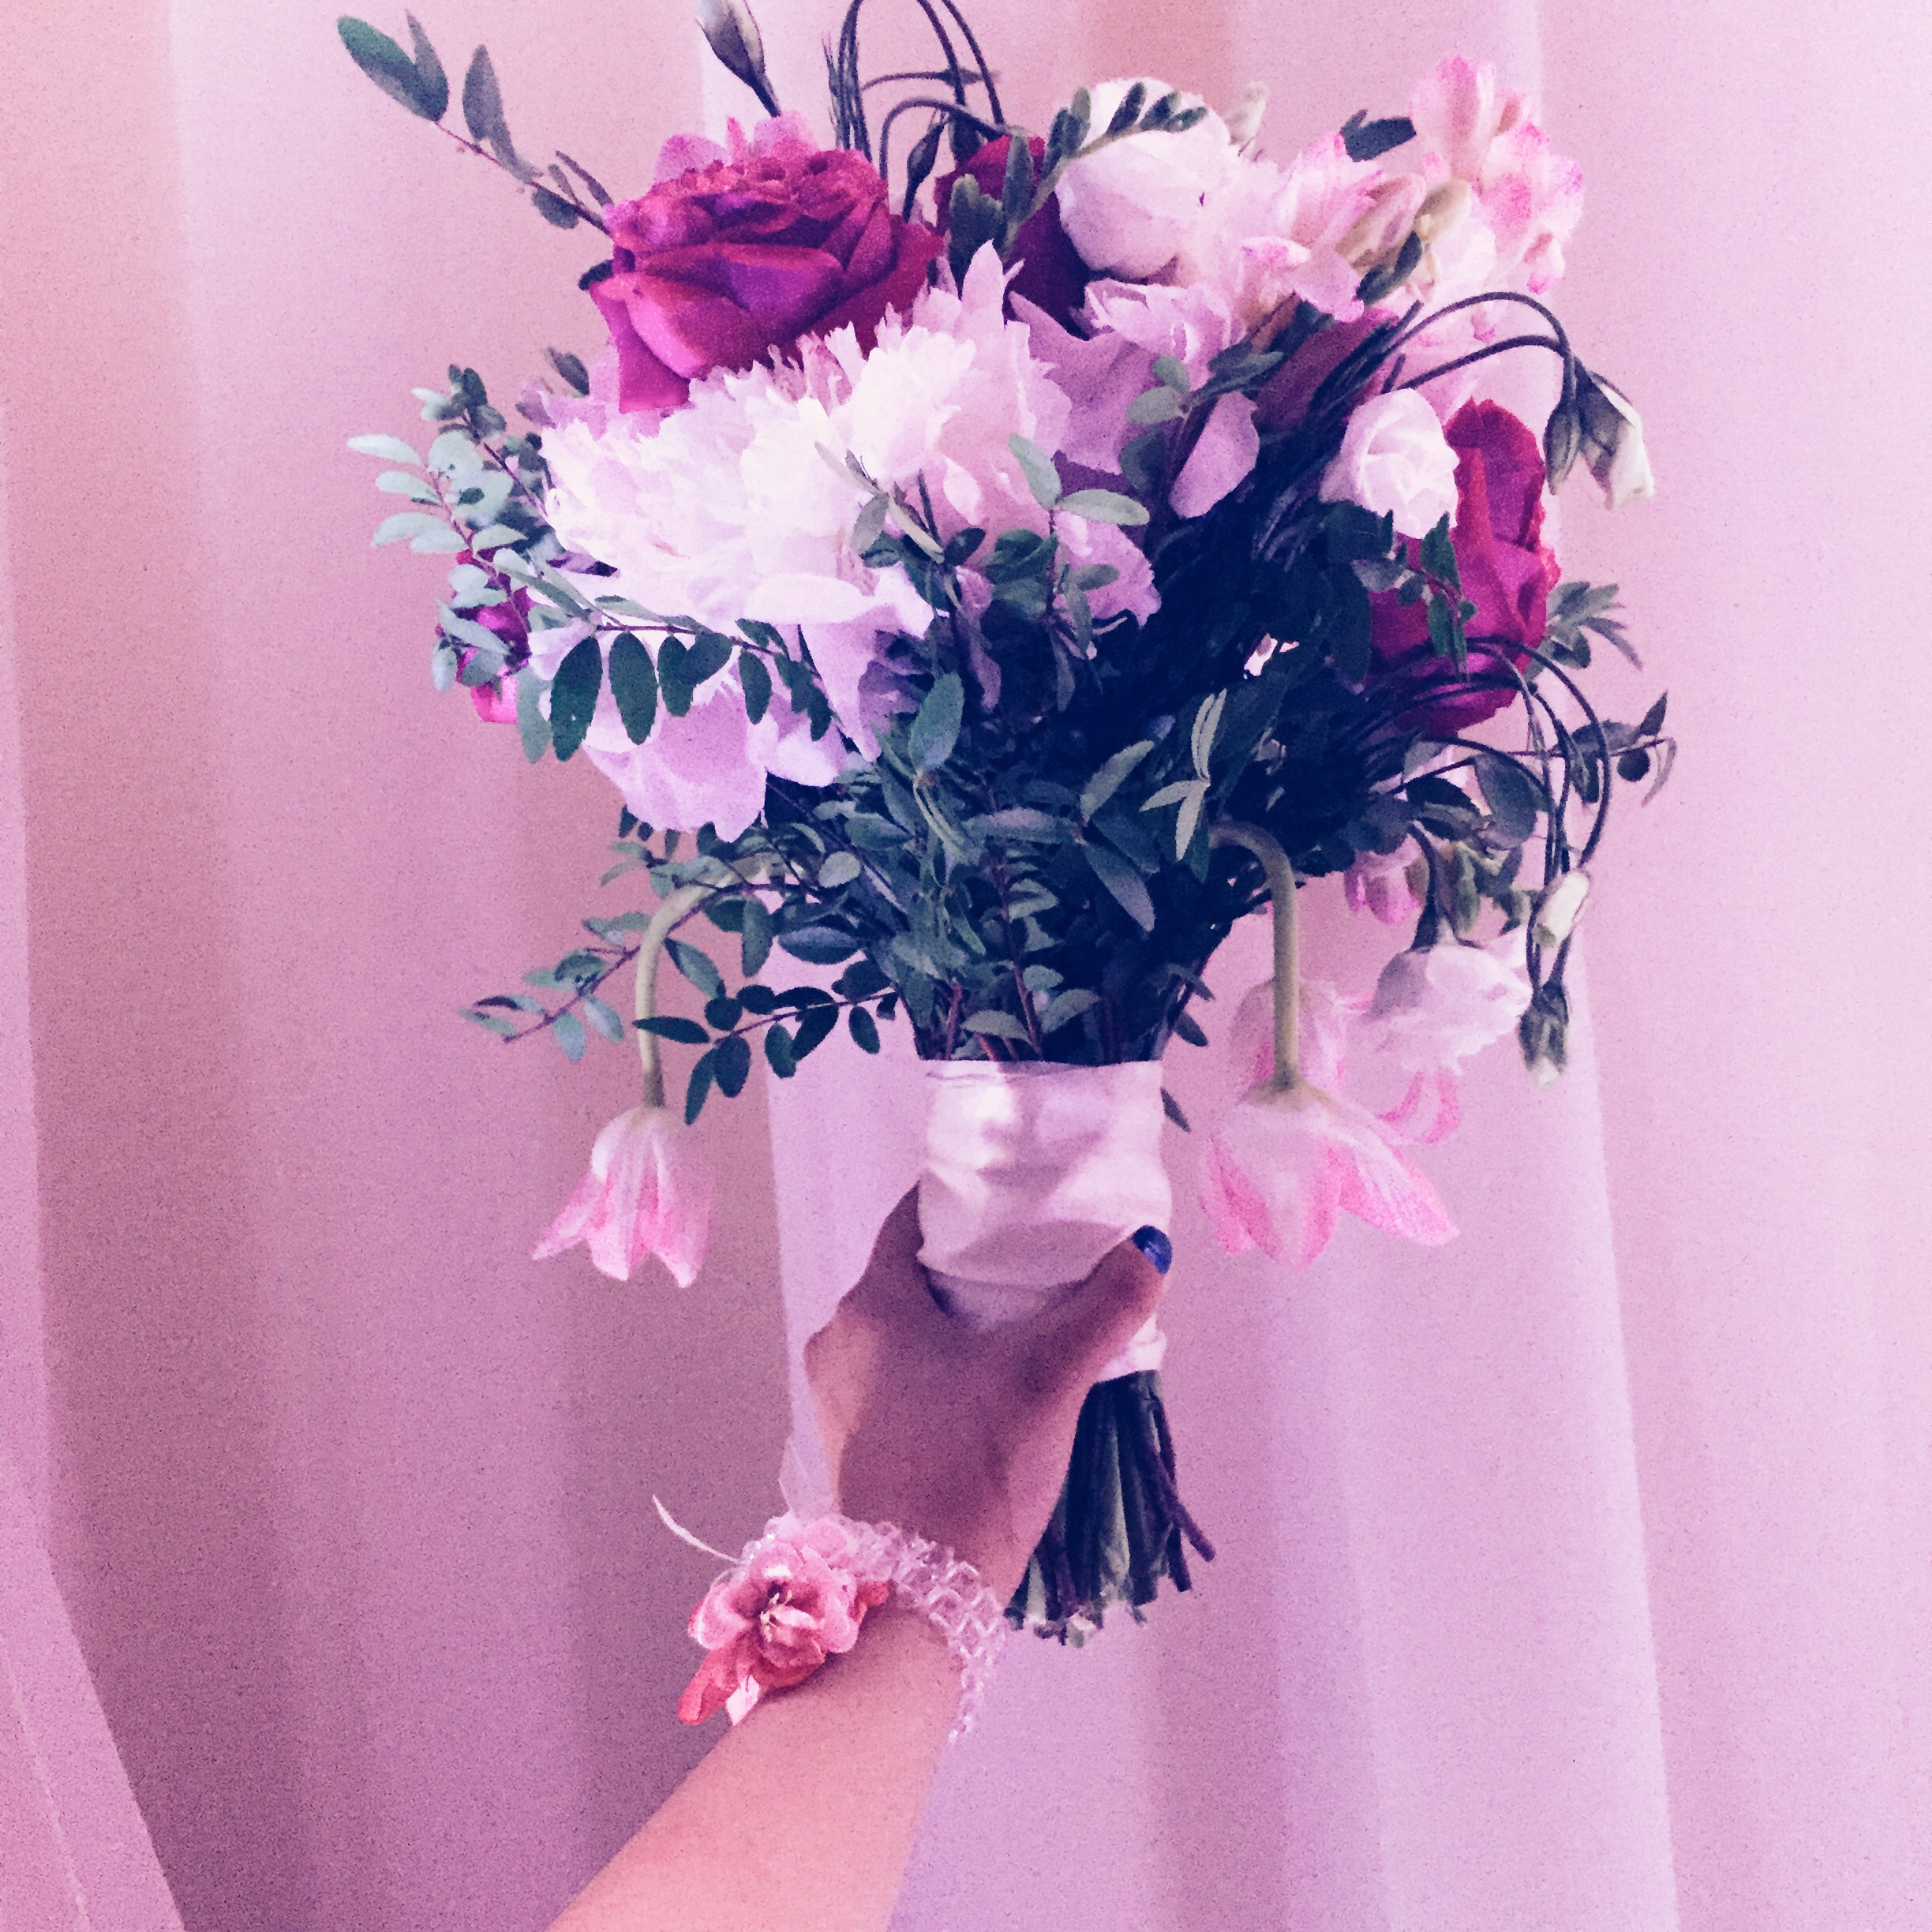 """Got the bouquet that the bride threw! A lady high-fived me afterwards and told me """"I love it when someone short gets the bouquet!"""". I was happy too, but now I'm not sure whether that's a compliment or insult. LOL!"""